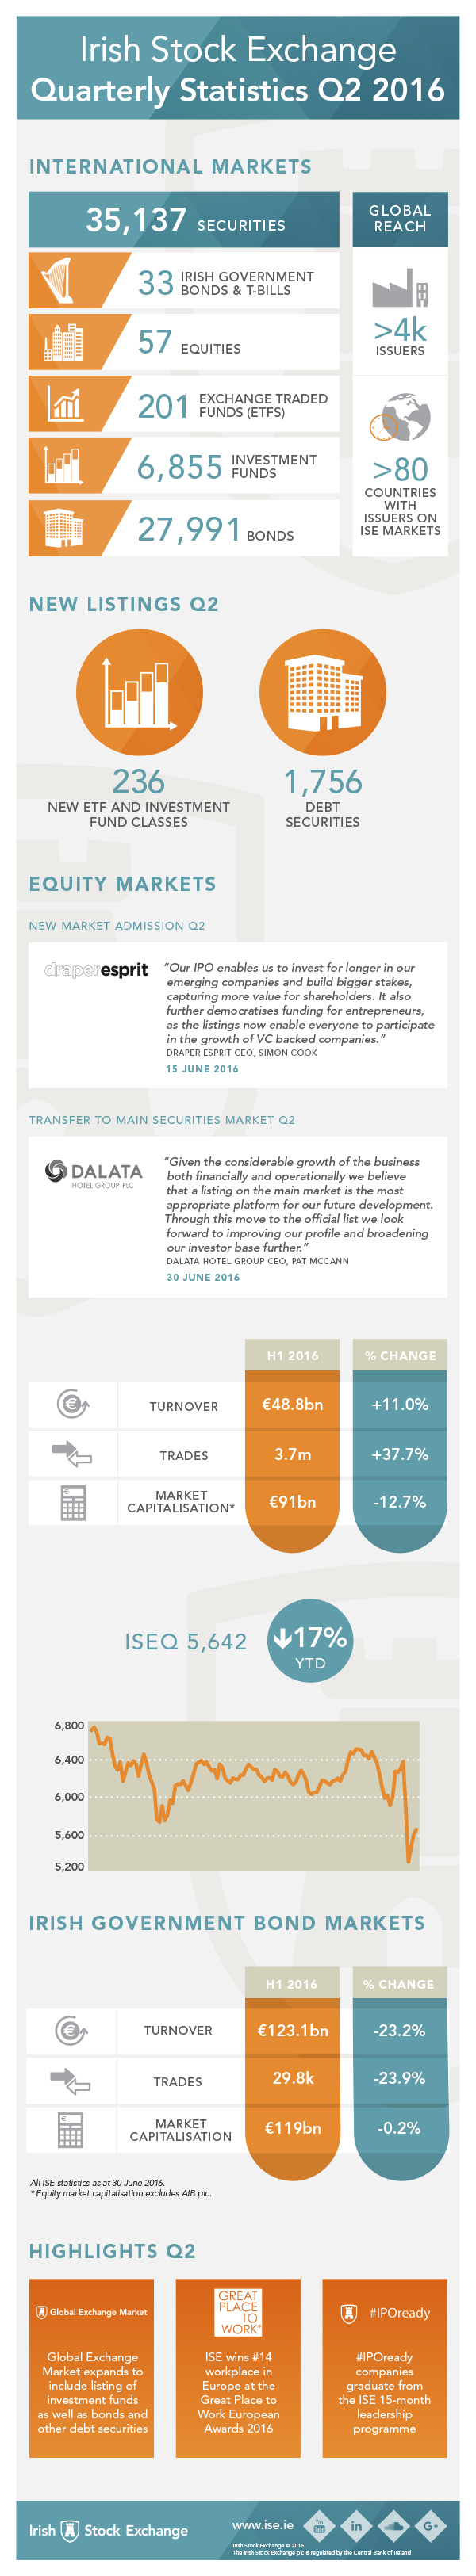 Irish Stock Exchange (ISE) infographic re Q2 2016 statistics and highlights